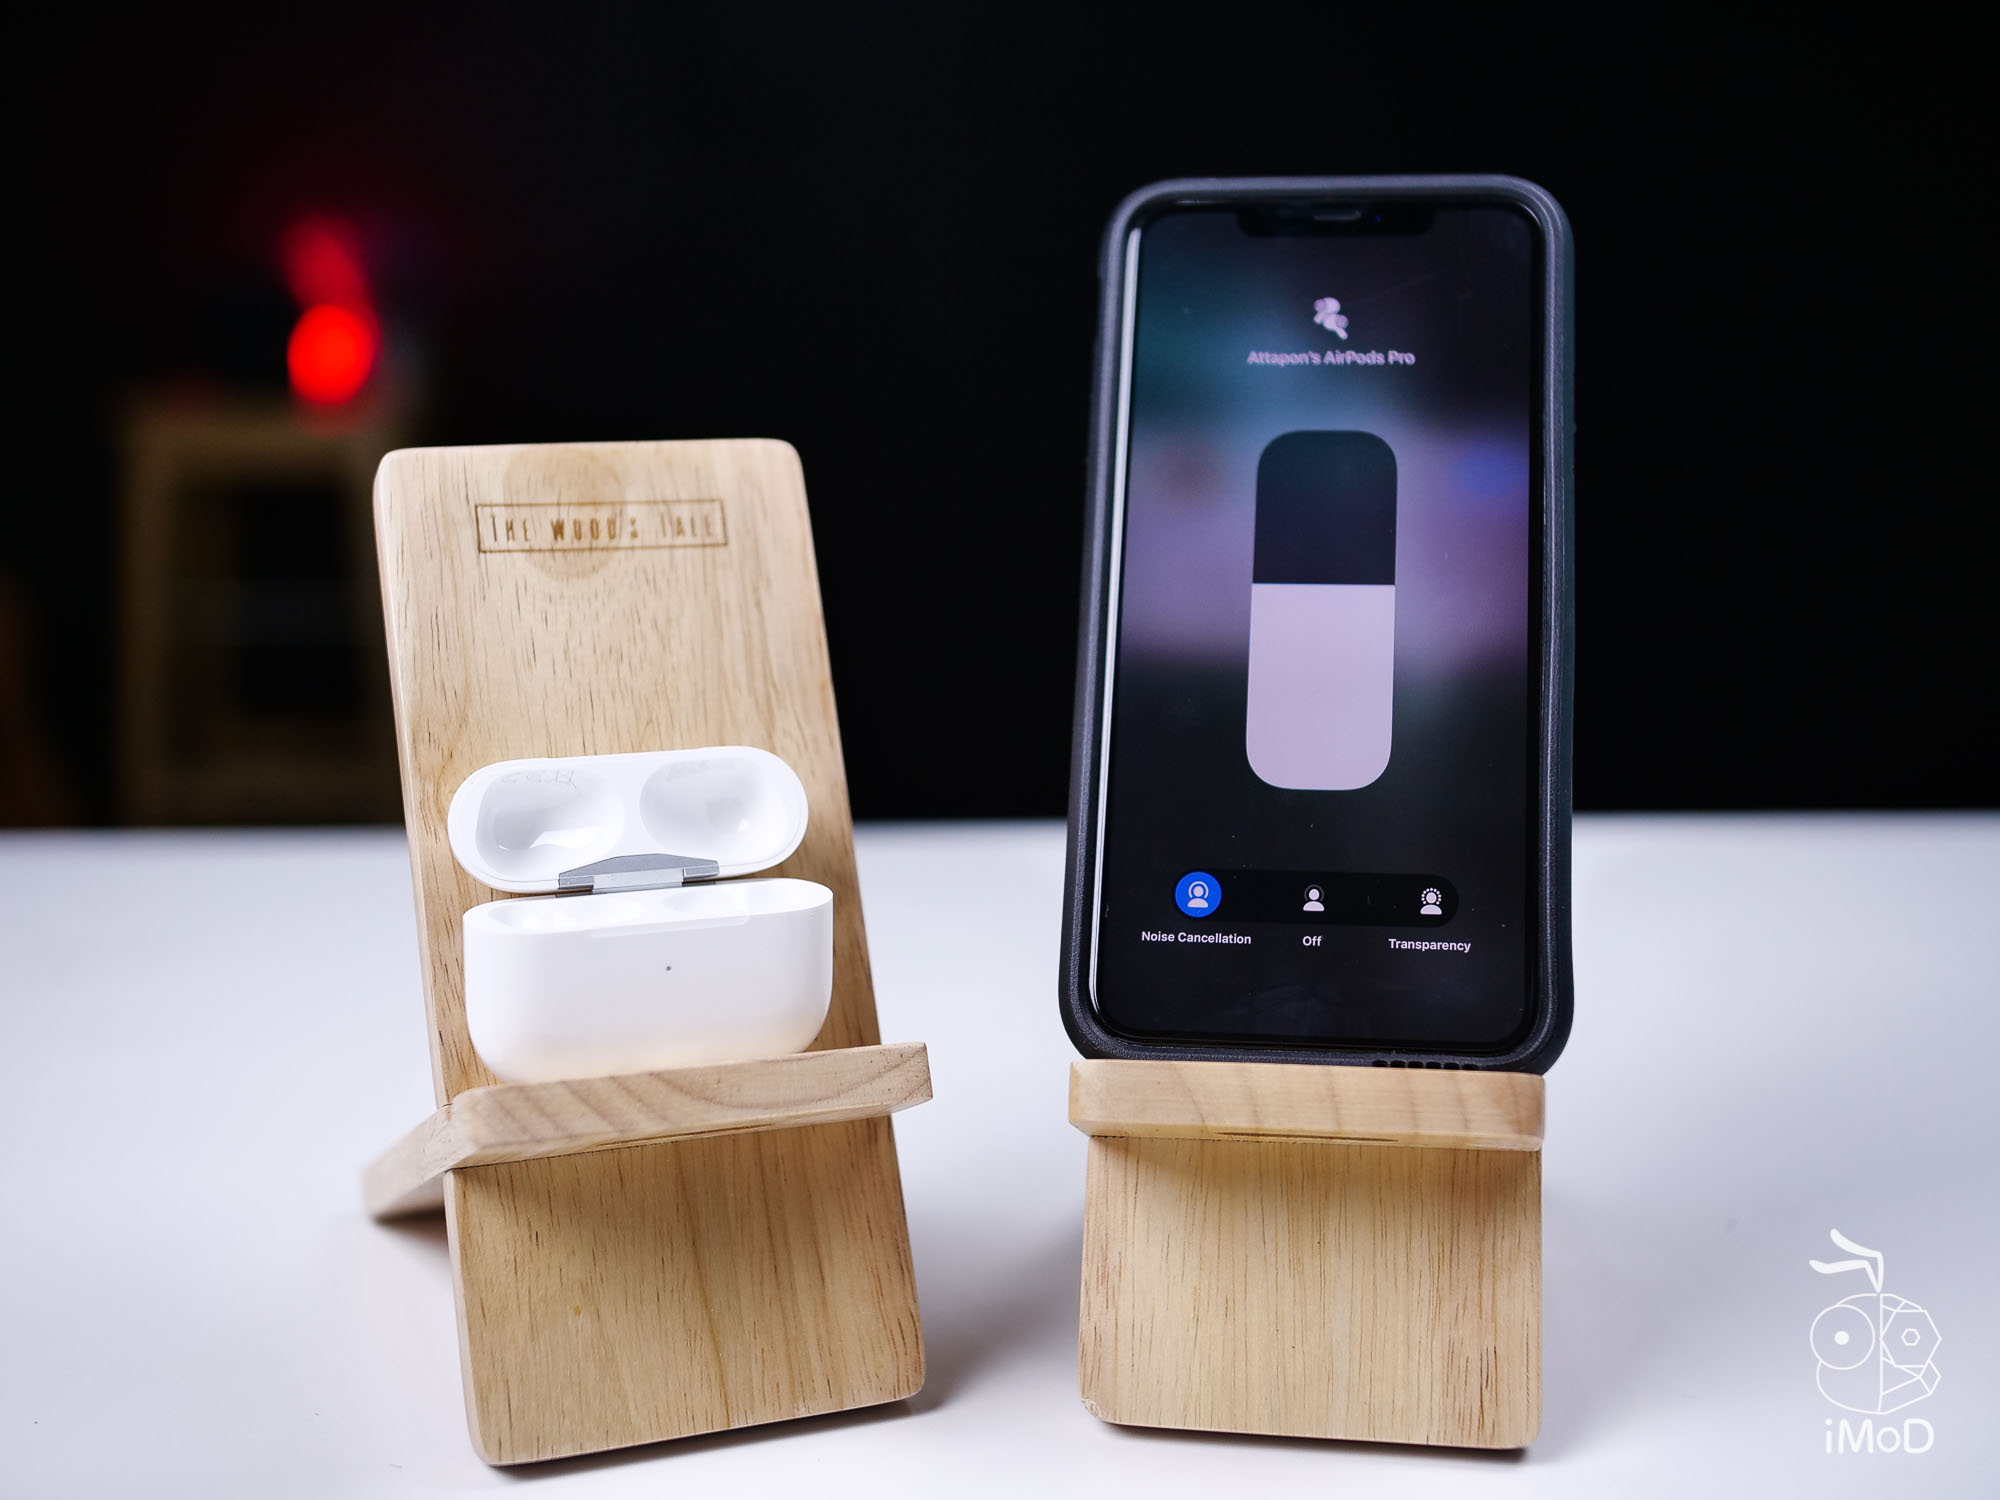 Airpods Pro Anc On 1014492